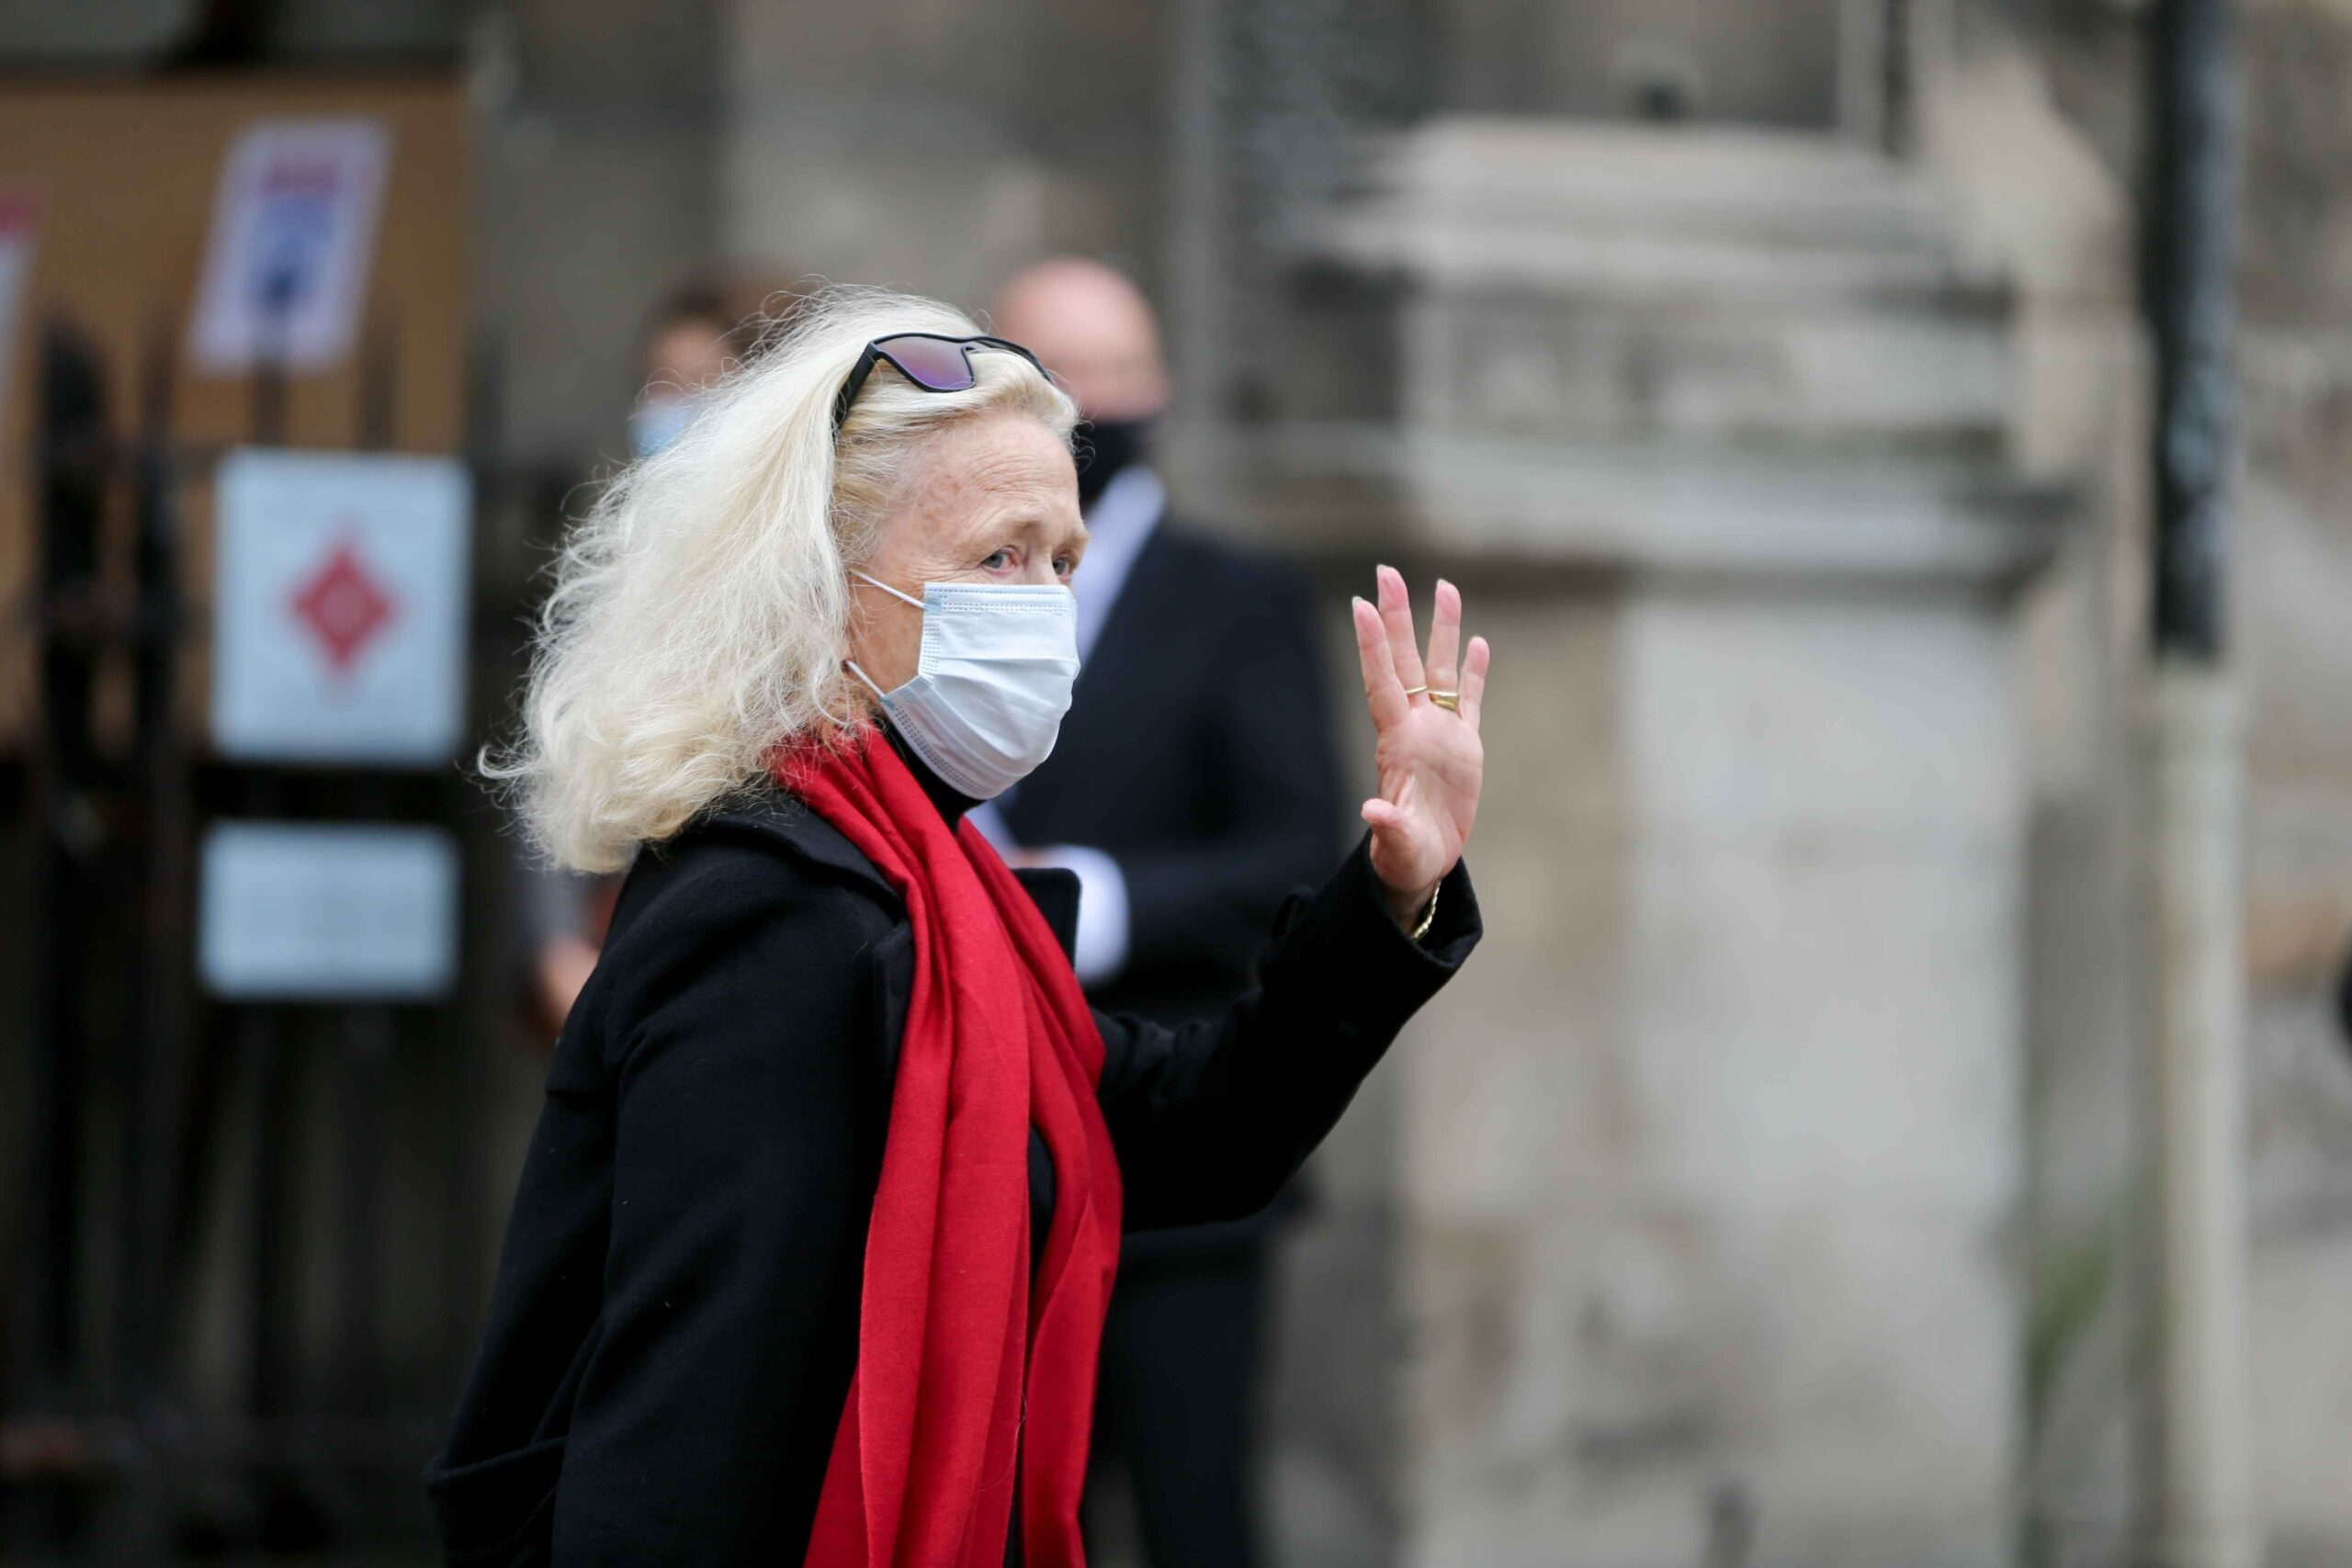 French actress Brigitet Fossey waves as she arrives for the funerals of French singer Juliette Greco, at the Saint-Germain-des-Pres church in Paris, on October 5, 2020. Legendary French singer Juliette Greco whose career spanned over half a century, has di